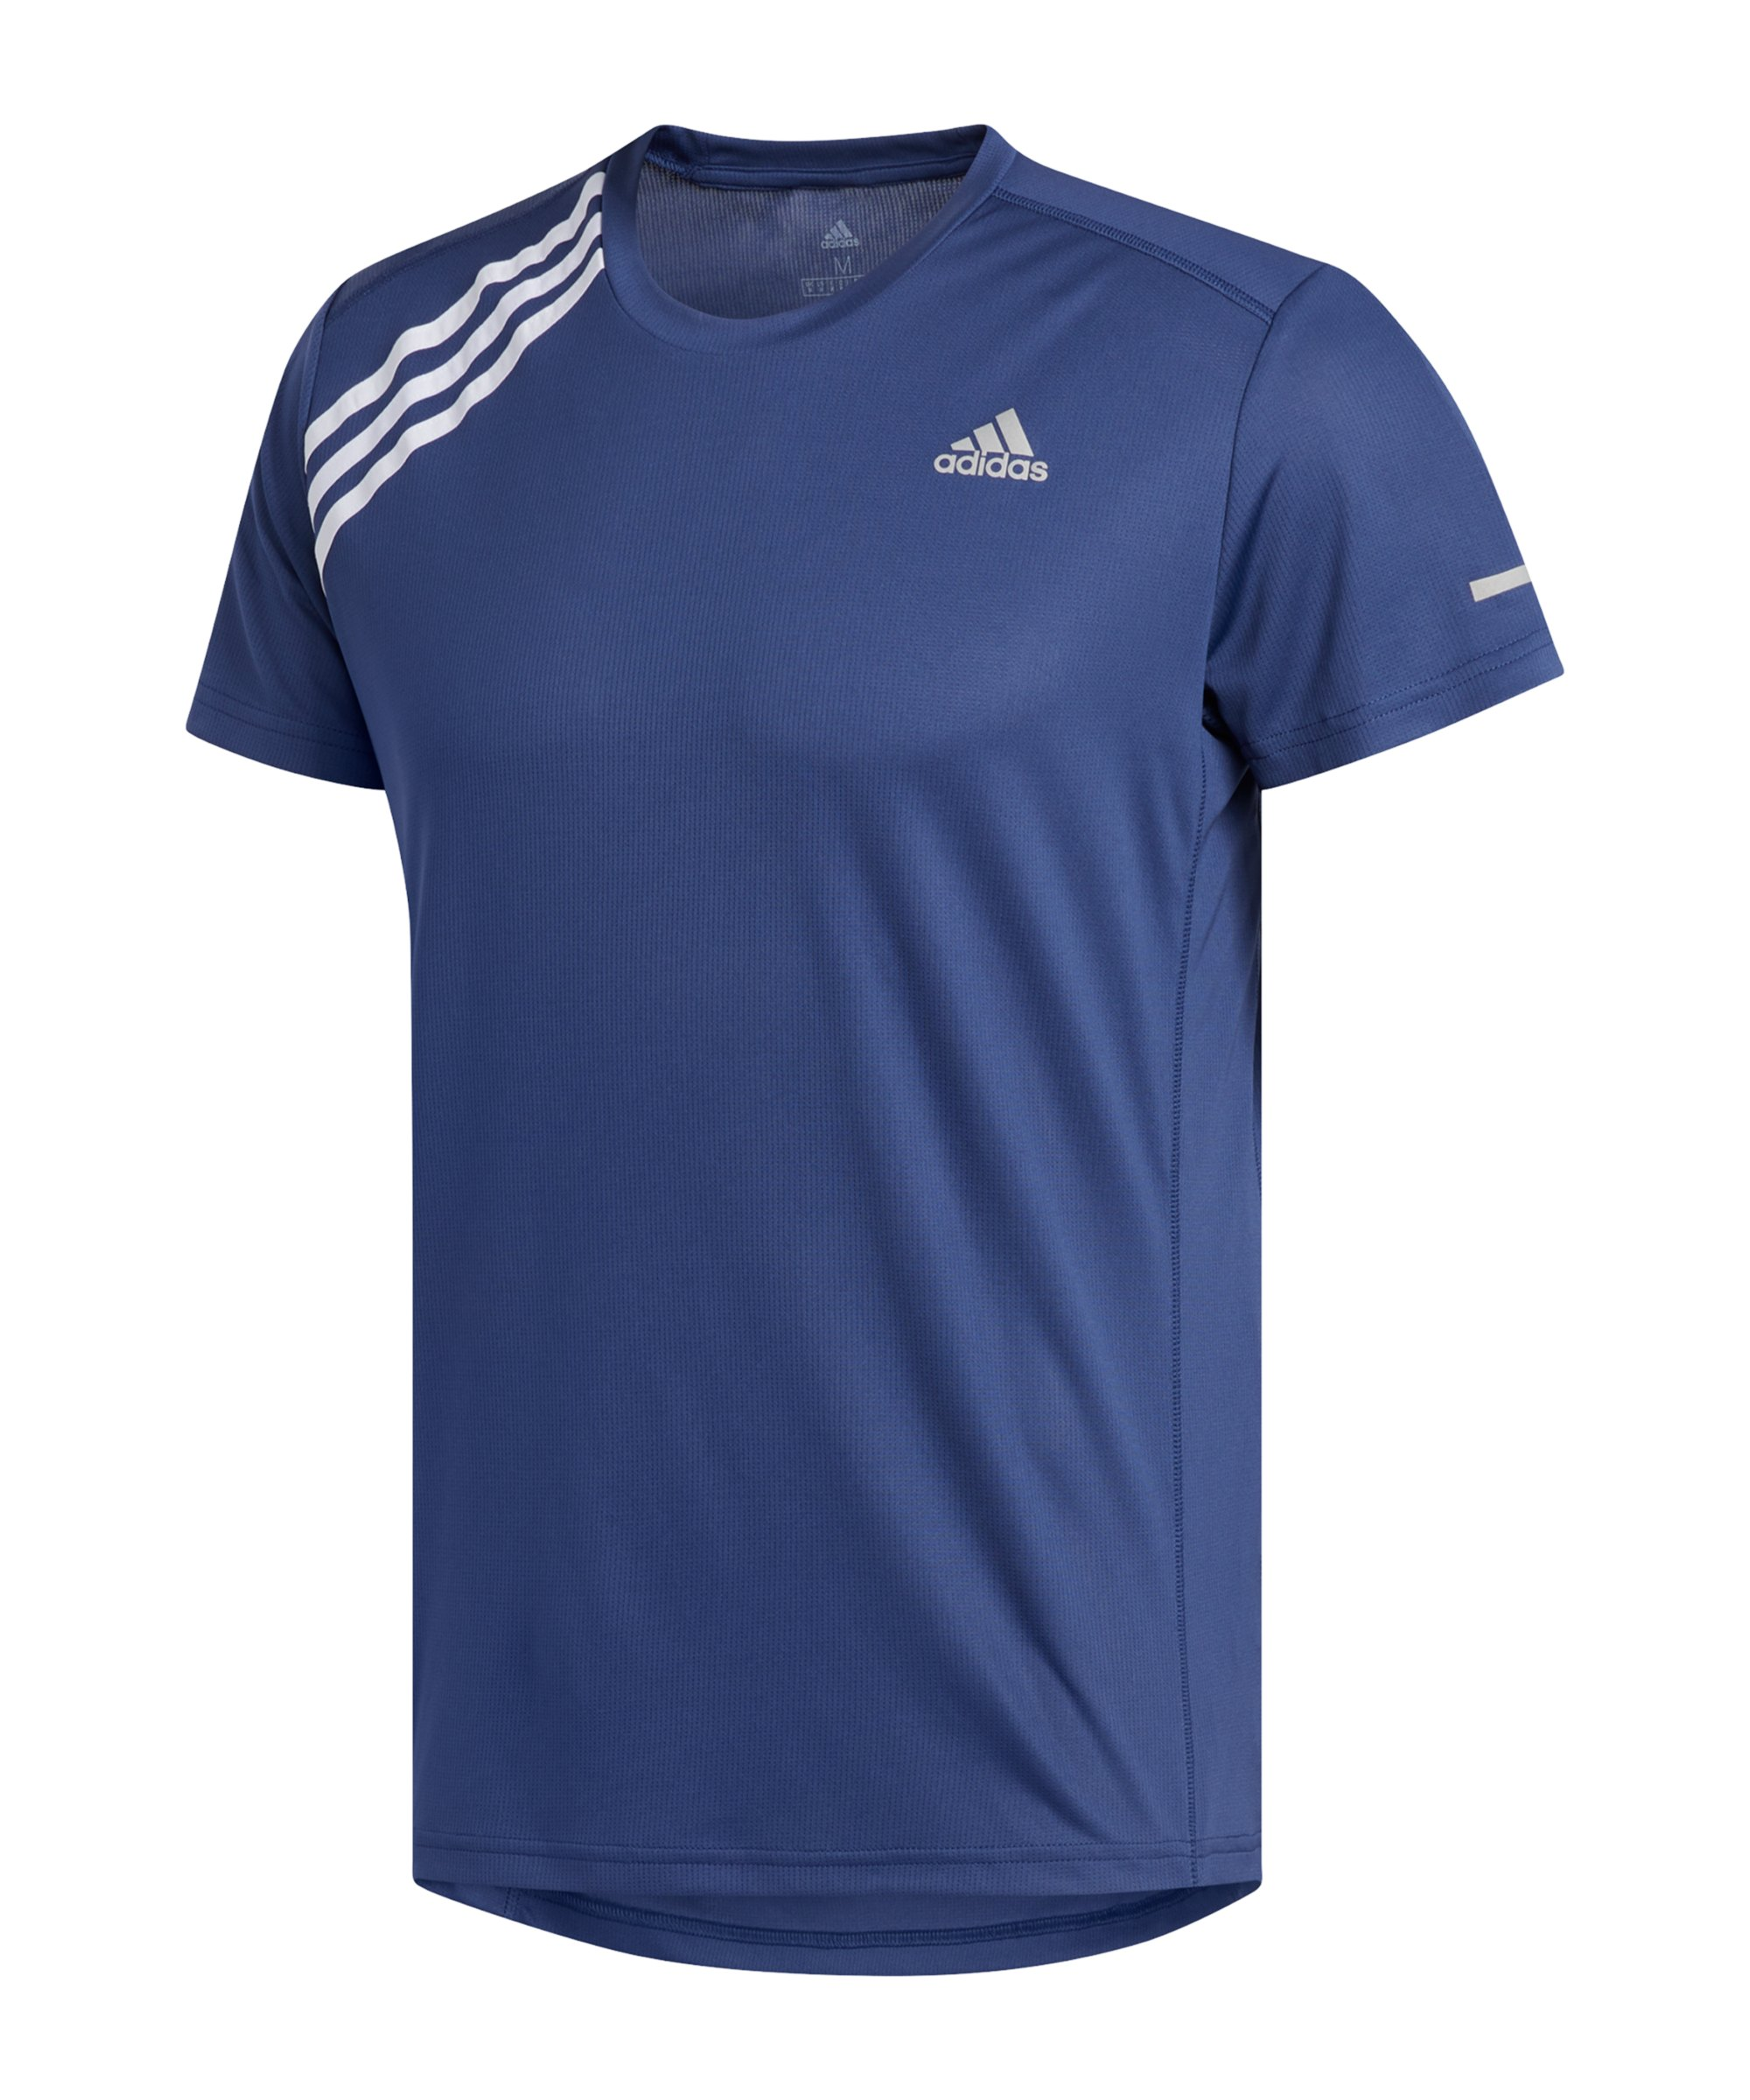 adidas Own The Run T-Shirt Running Blau Weiss - blau